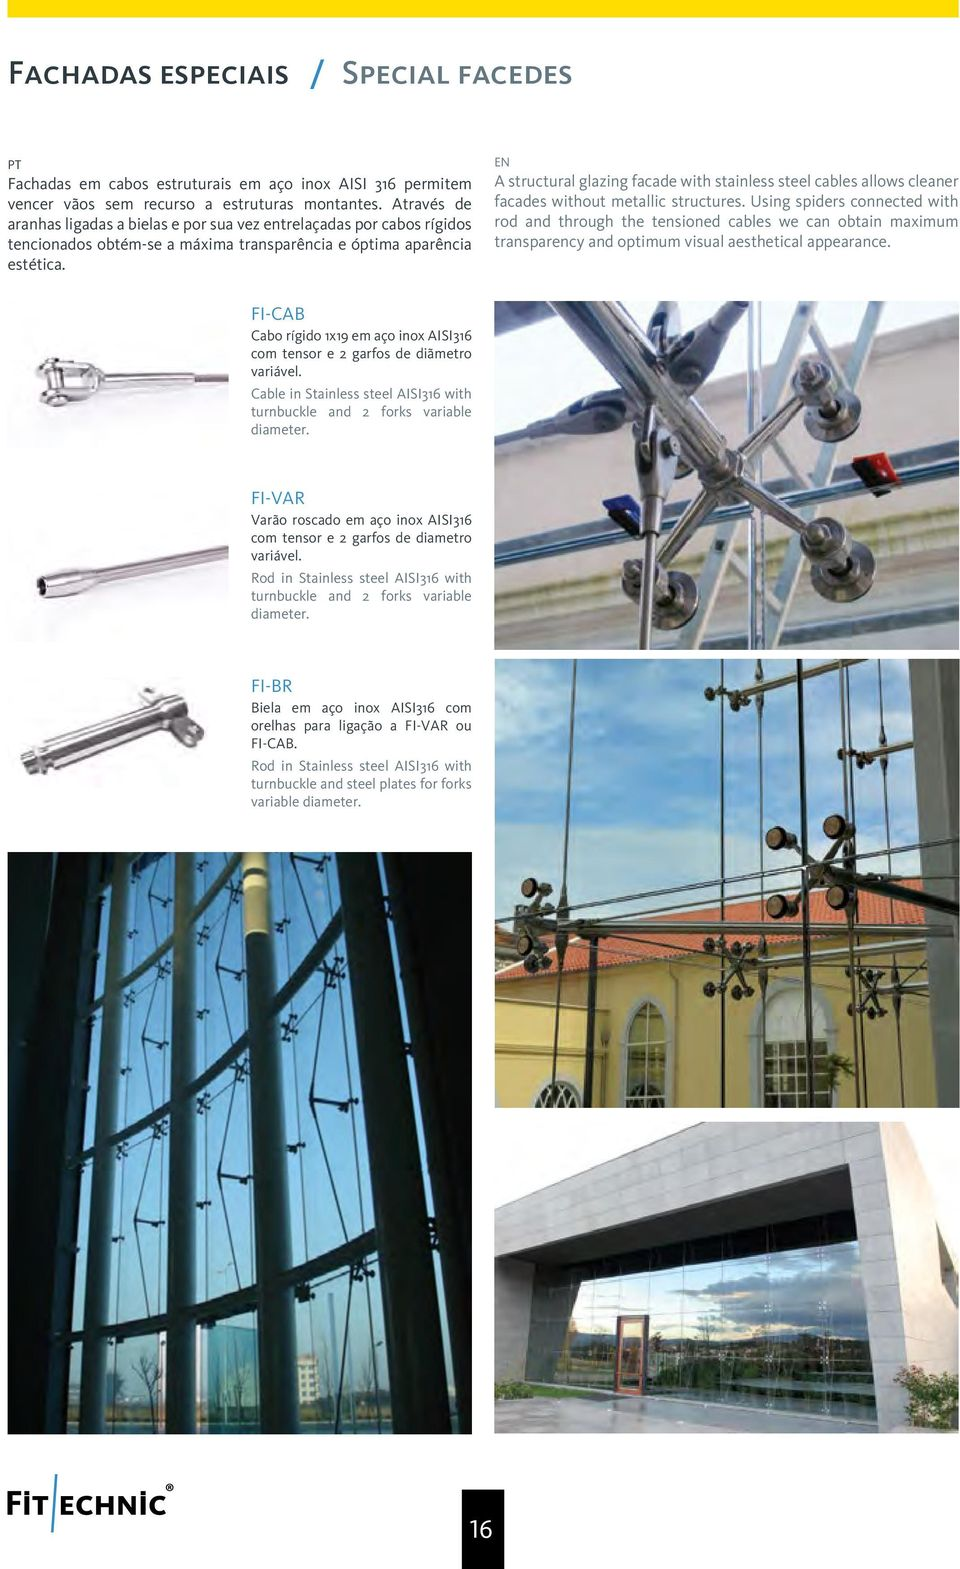 EN A structural glazing facade with stainless steel cables allows cleaner facades without metallic structures.